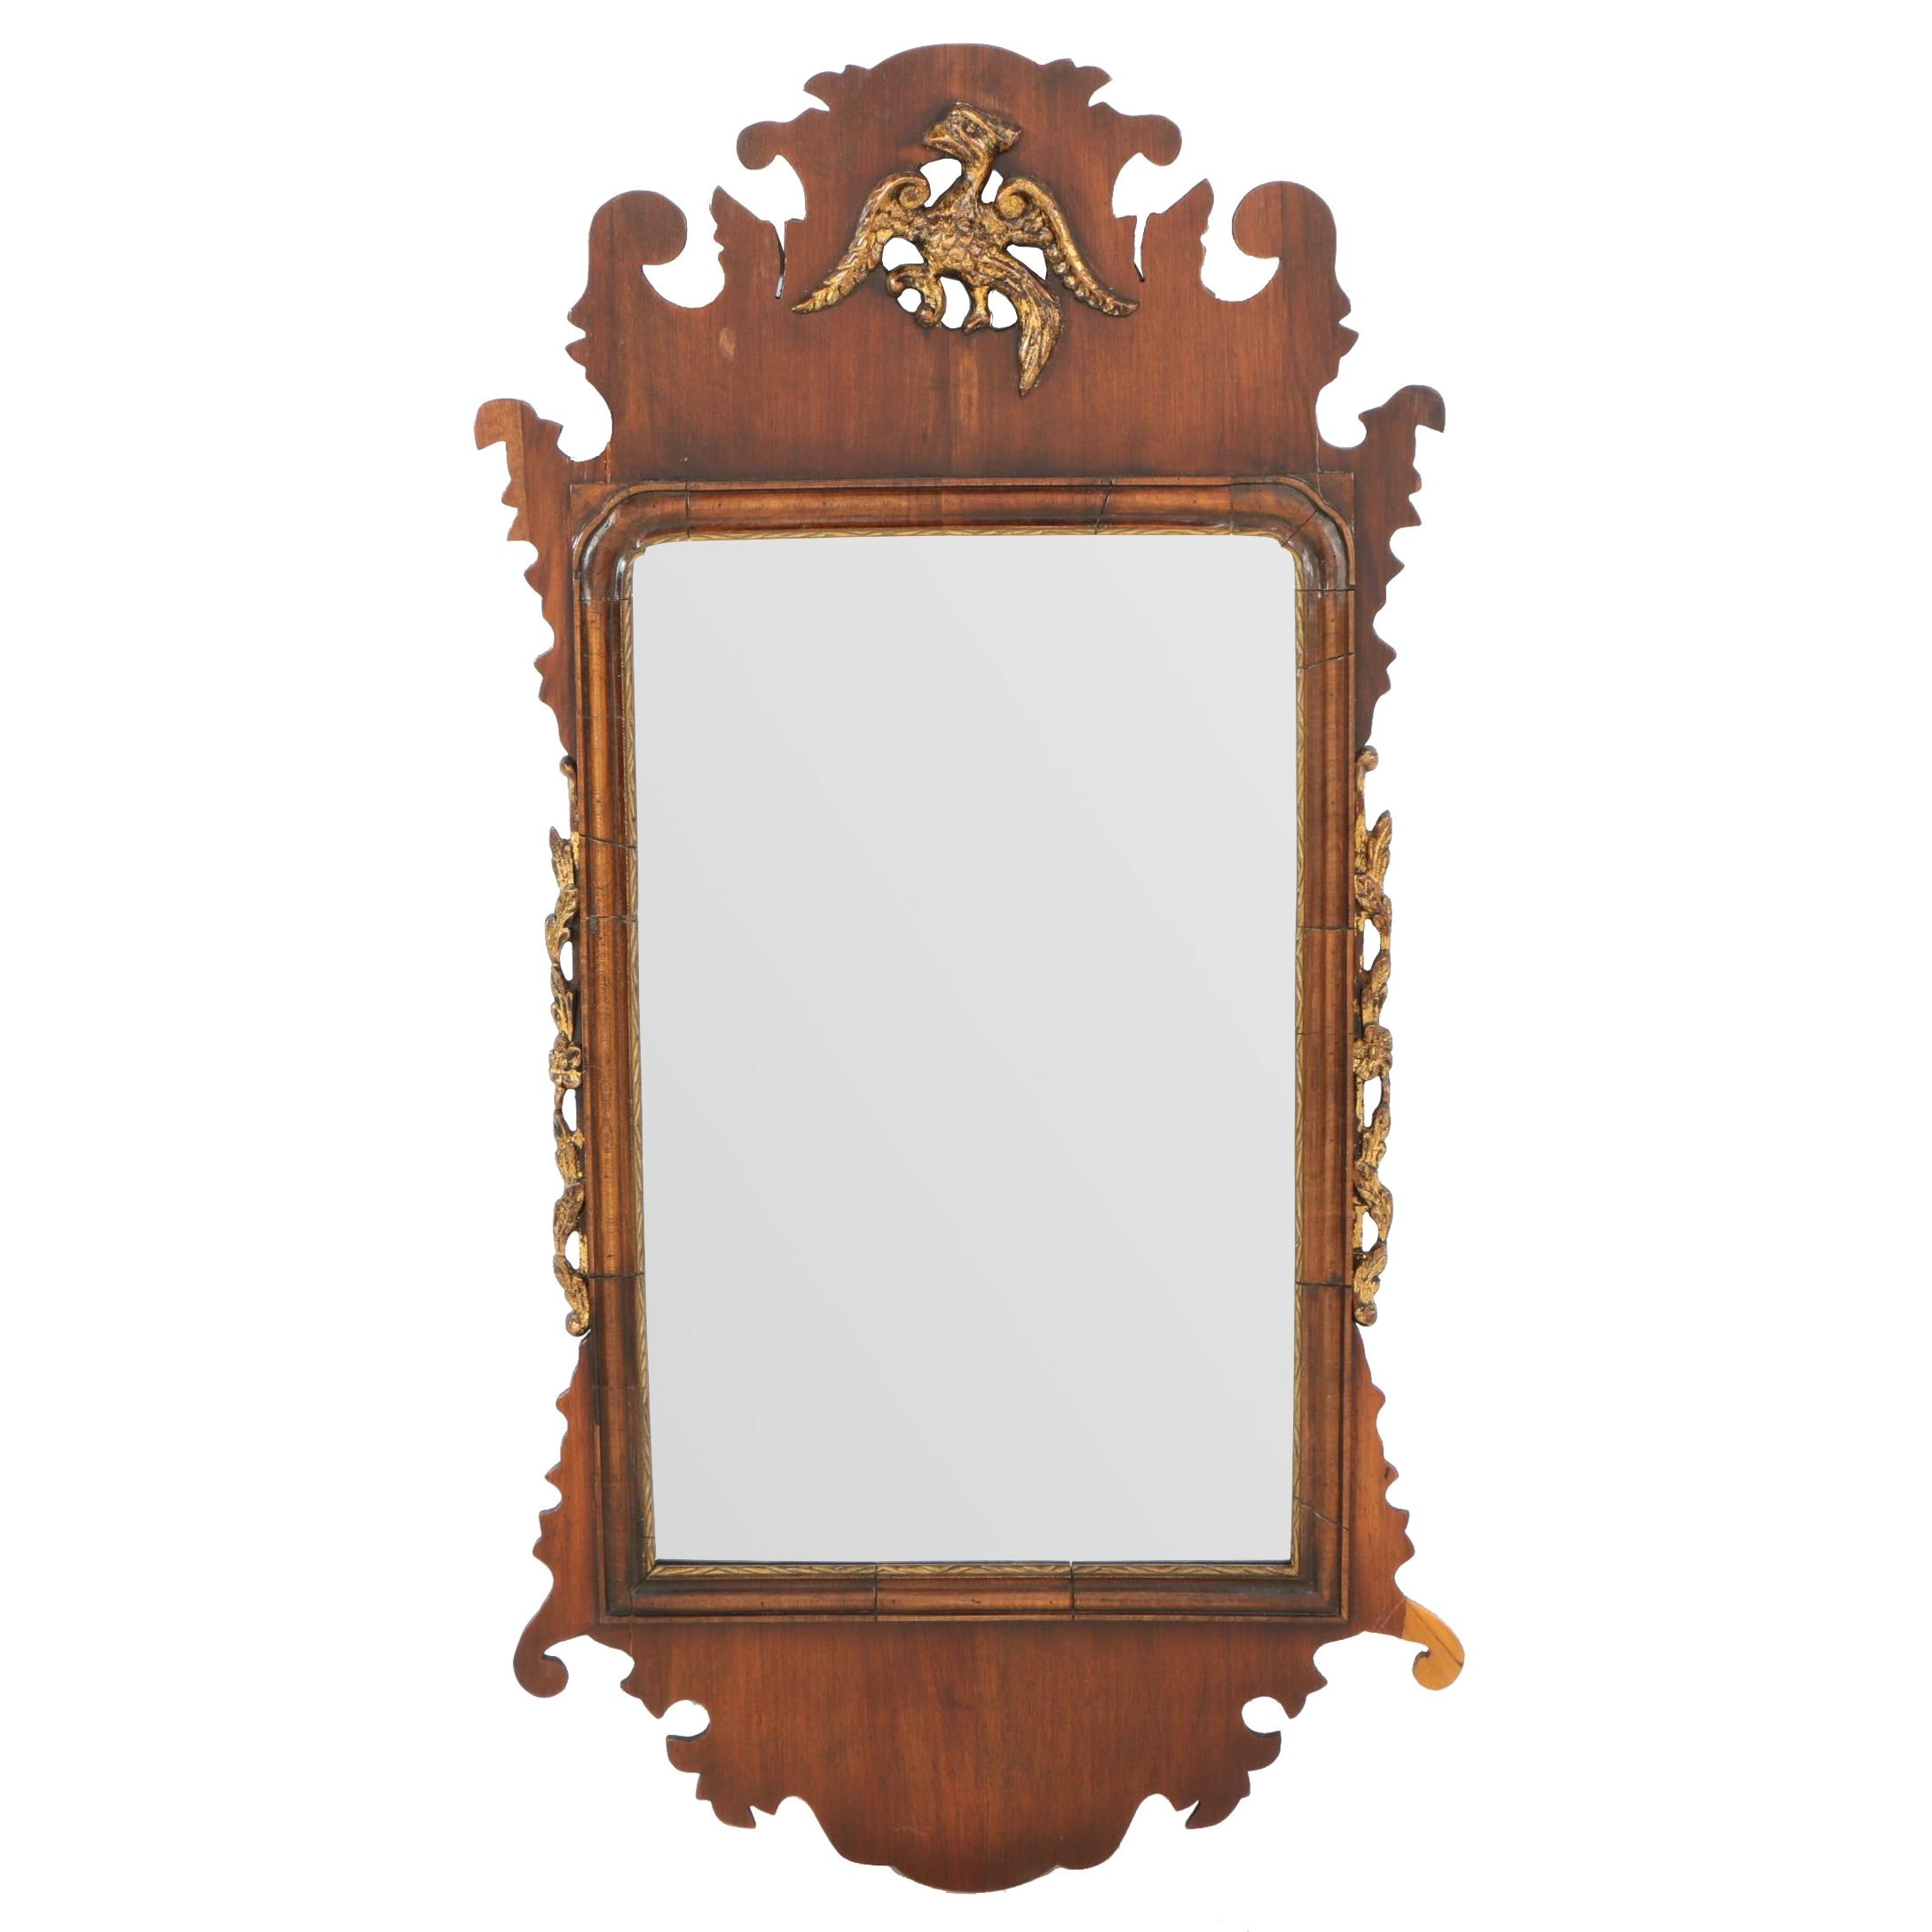 George III Style Mahogany and Parcel-Gilt Fret-Carved Mirror, 20th Century